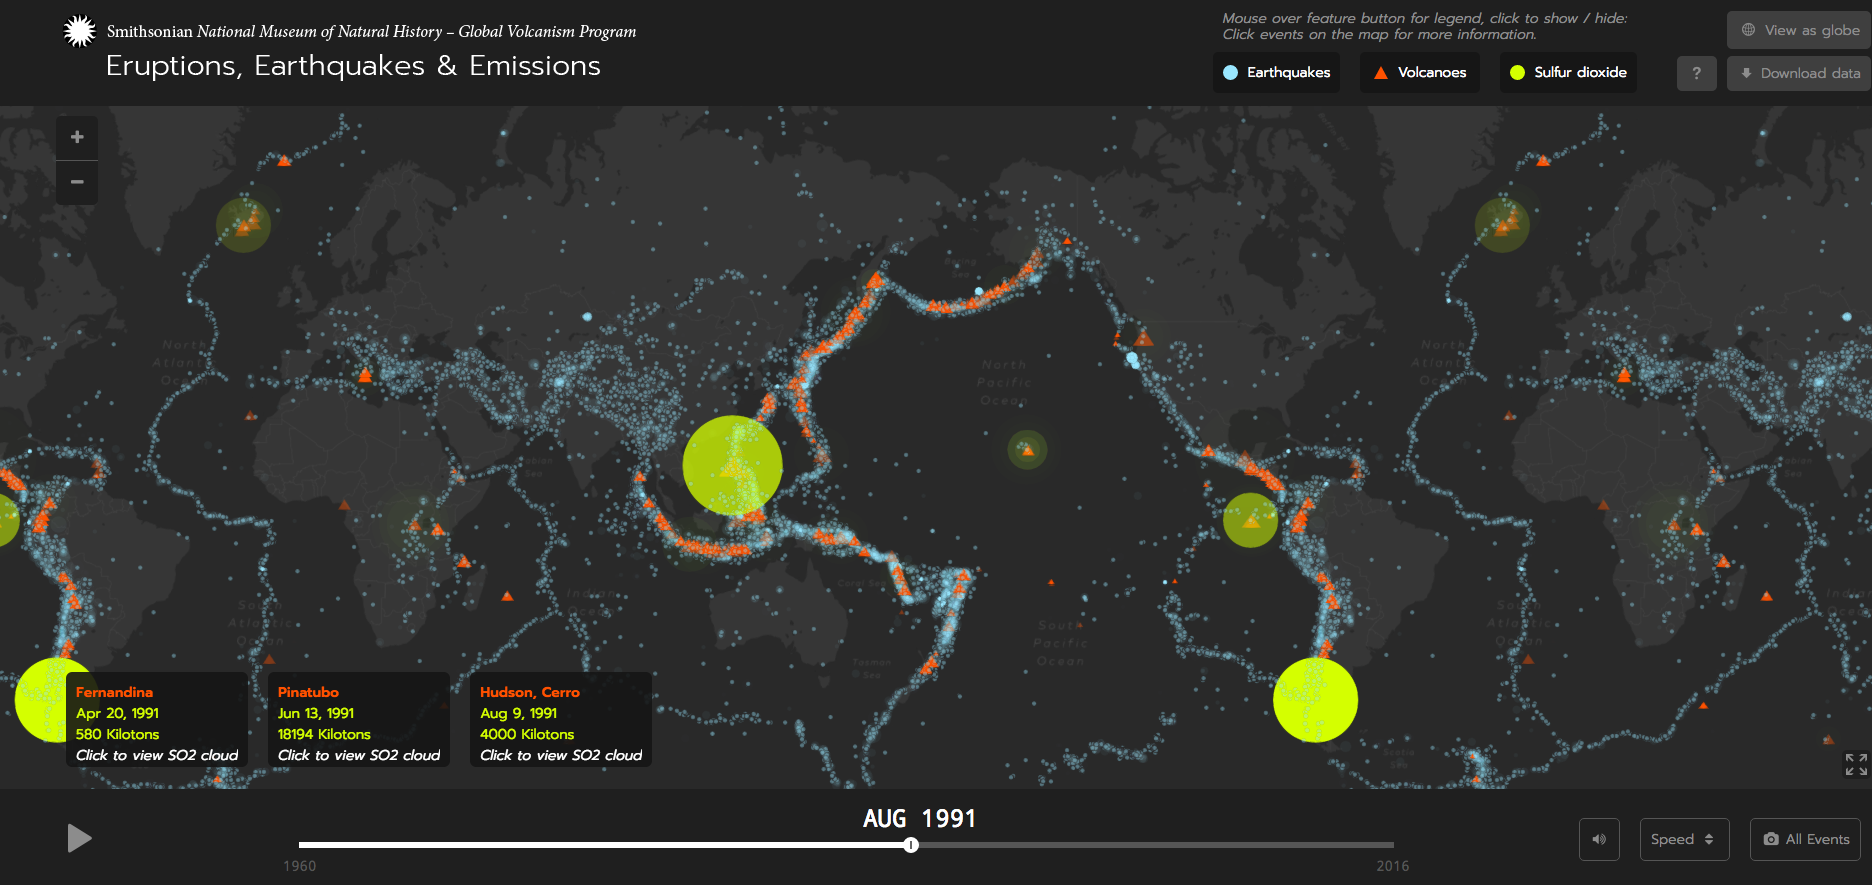 Eruptions earthquakes emissions visualizing the planets global volcanism program 2016 eruptions earthquakes emissions v 10 gumiabroncs Gallery